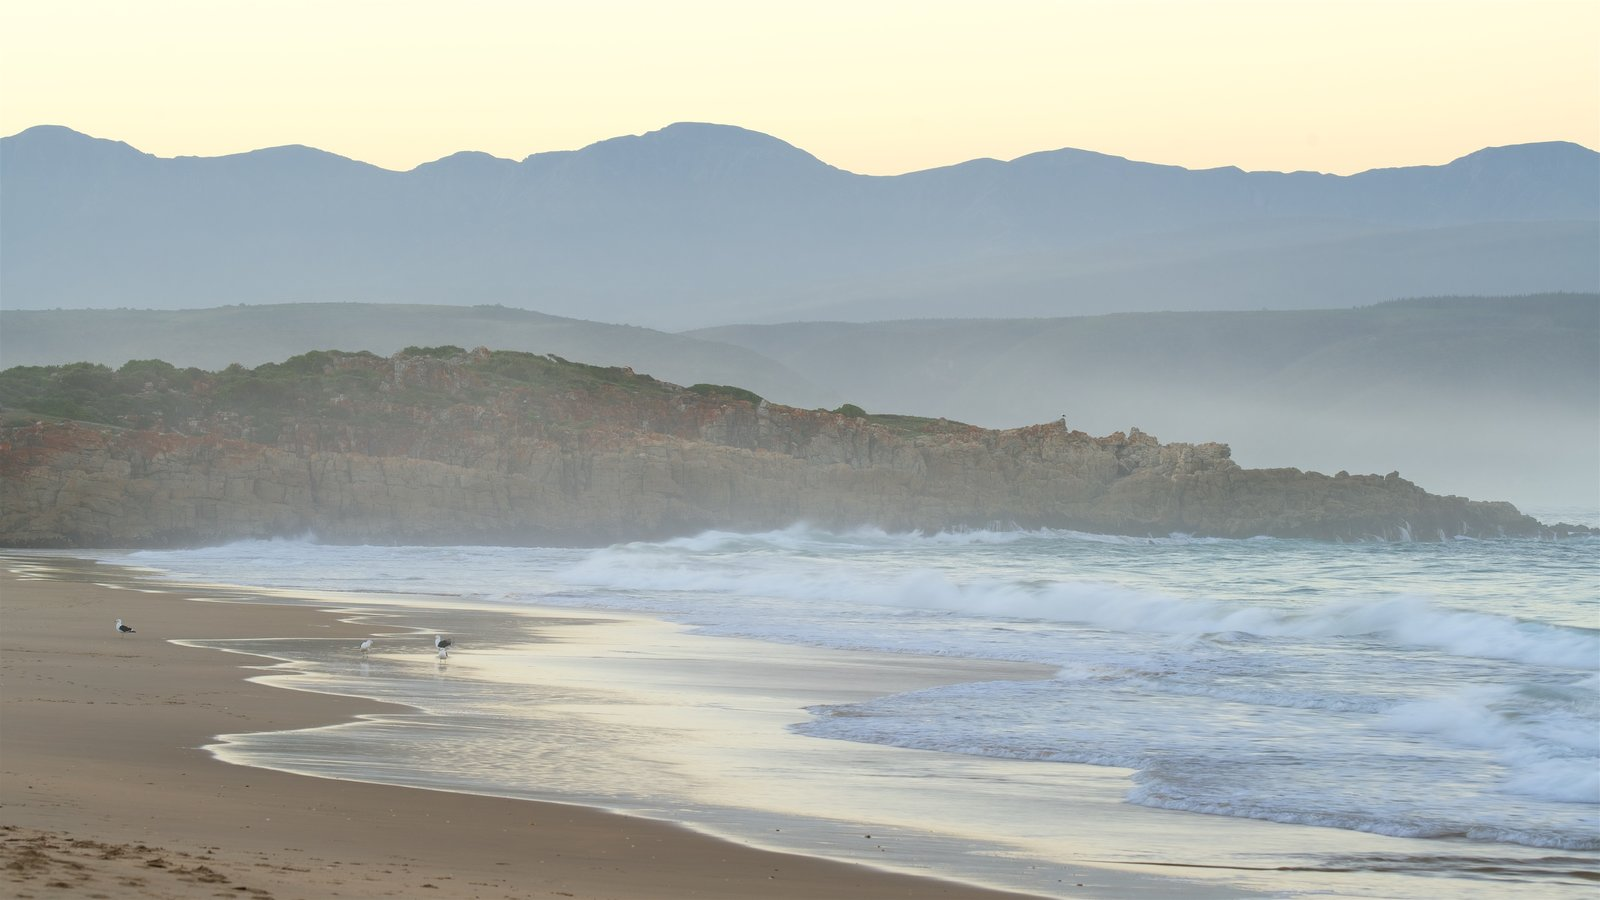 Plettenberg Bay Beach featuring general coastal views, landscape views and a beach